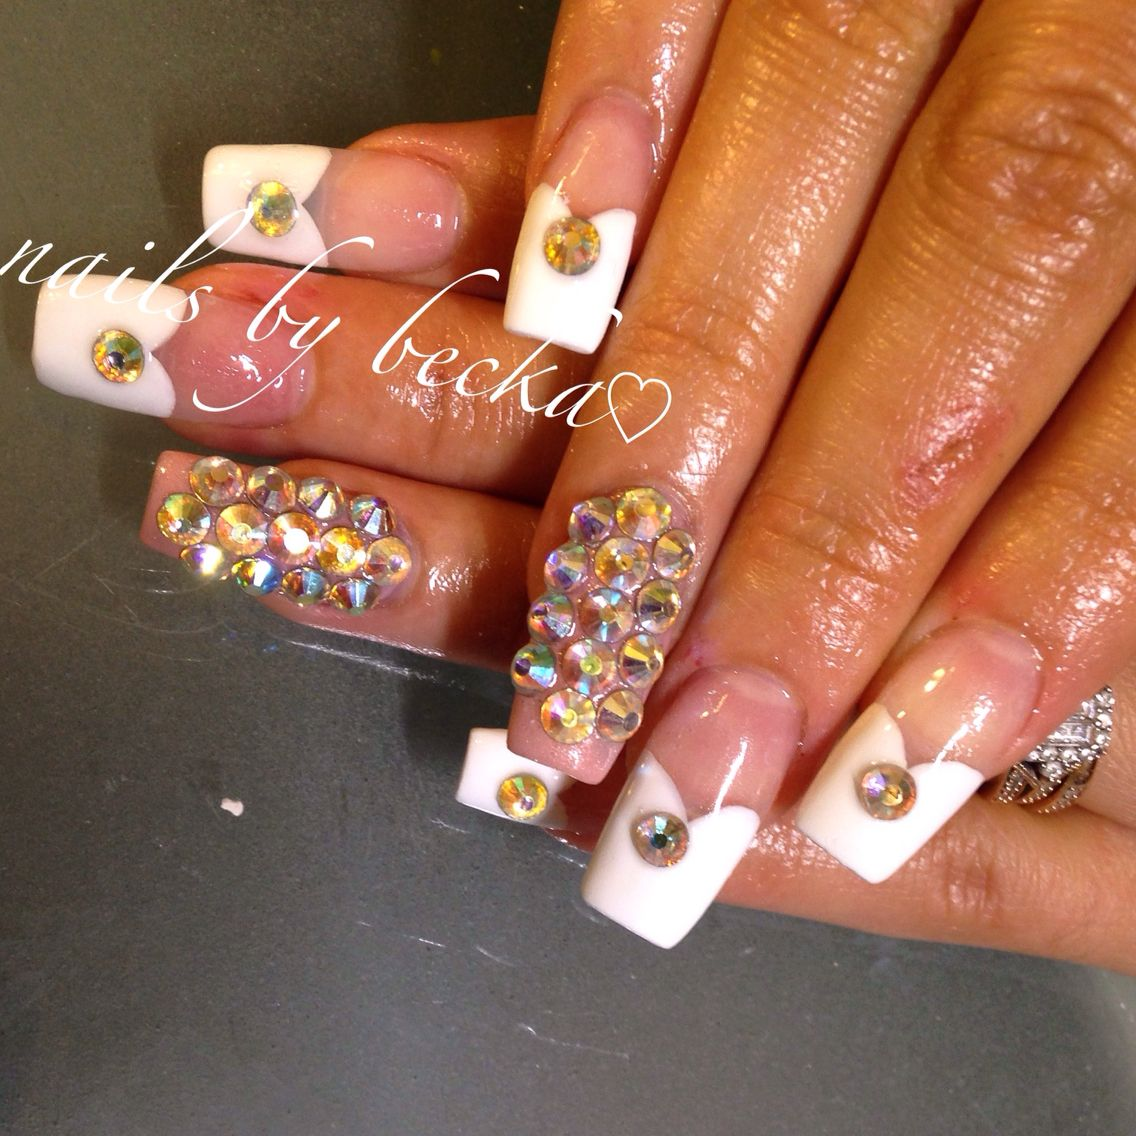 Coffin nails 3d design heart French tip , acrylic nails | Nails by ...